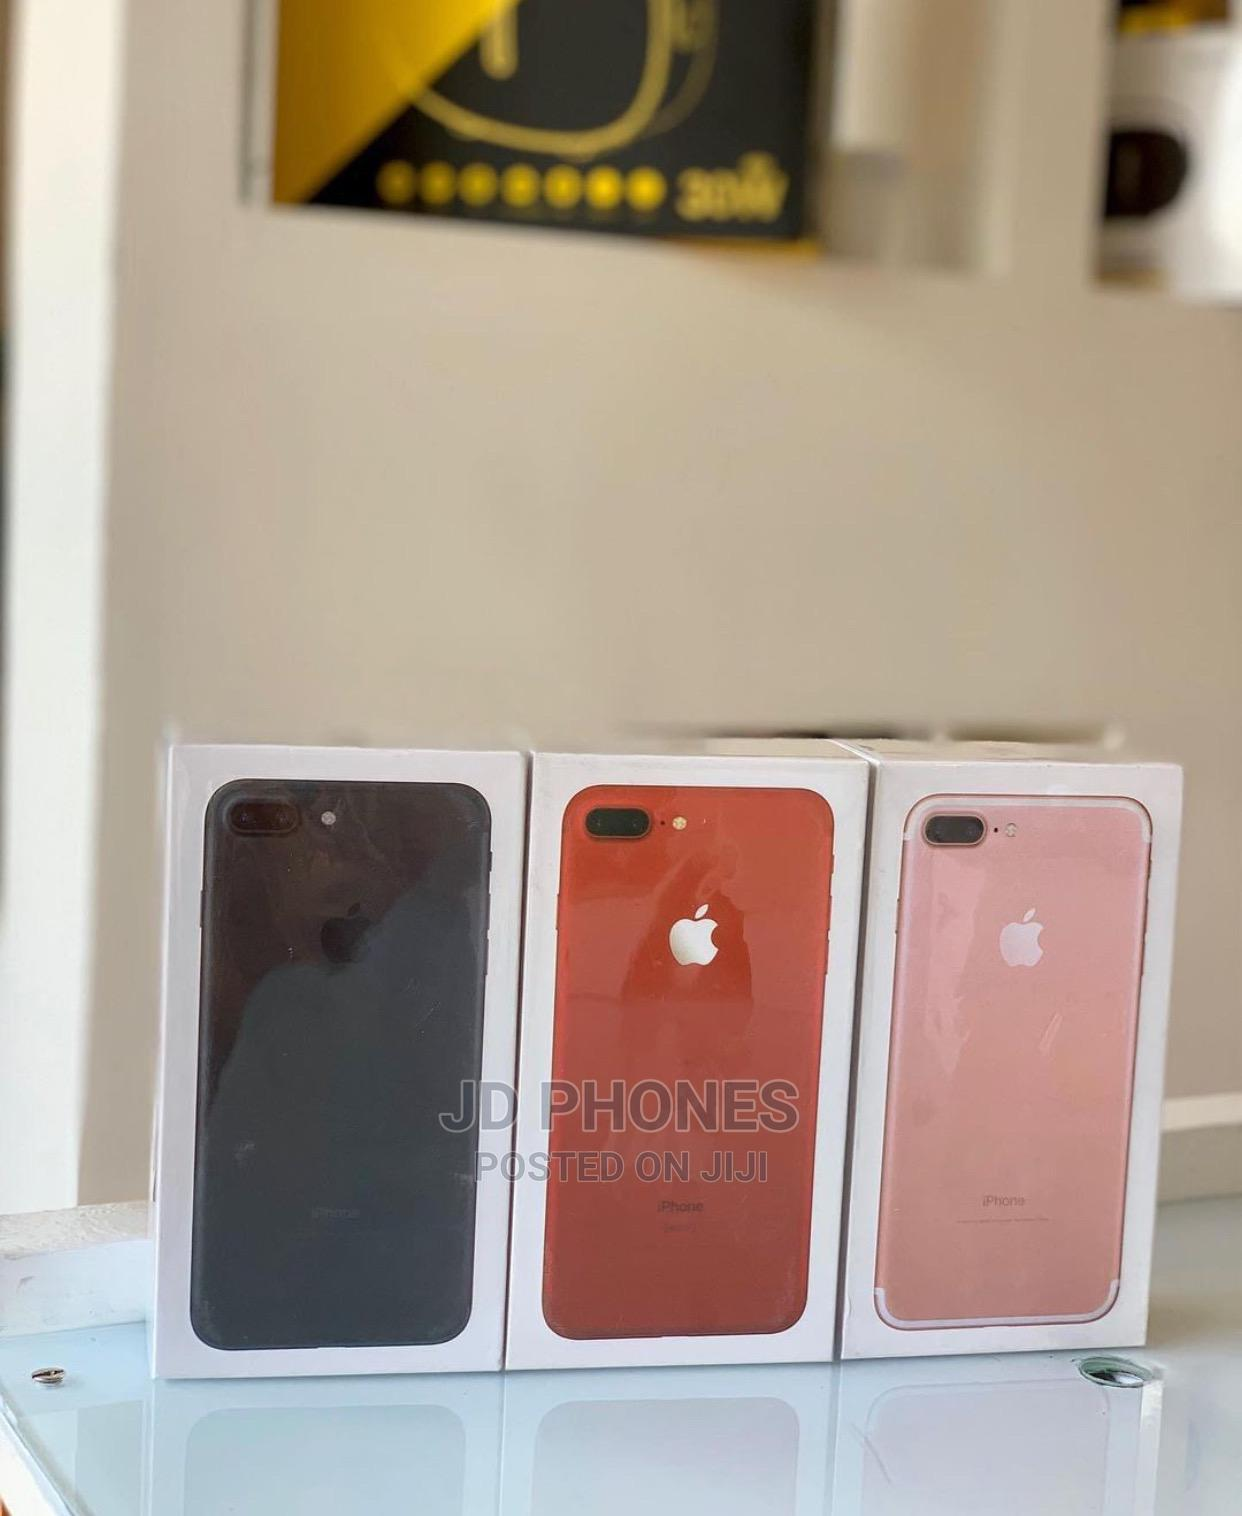 New Apple iPhone 7 Plus 128 GB | Mobile Phones for sale in Airport Residential Area, Greater Accra, Ghana